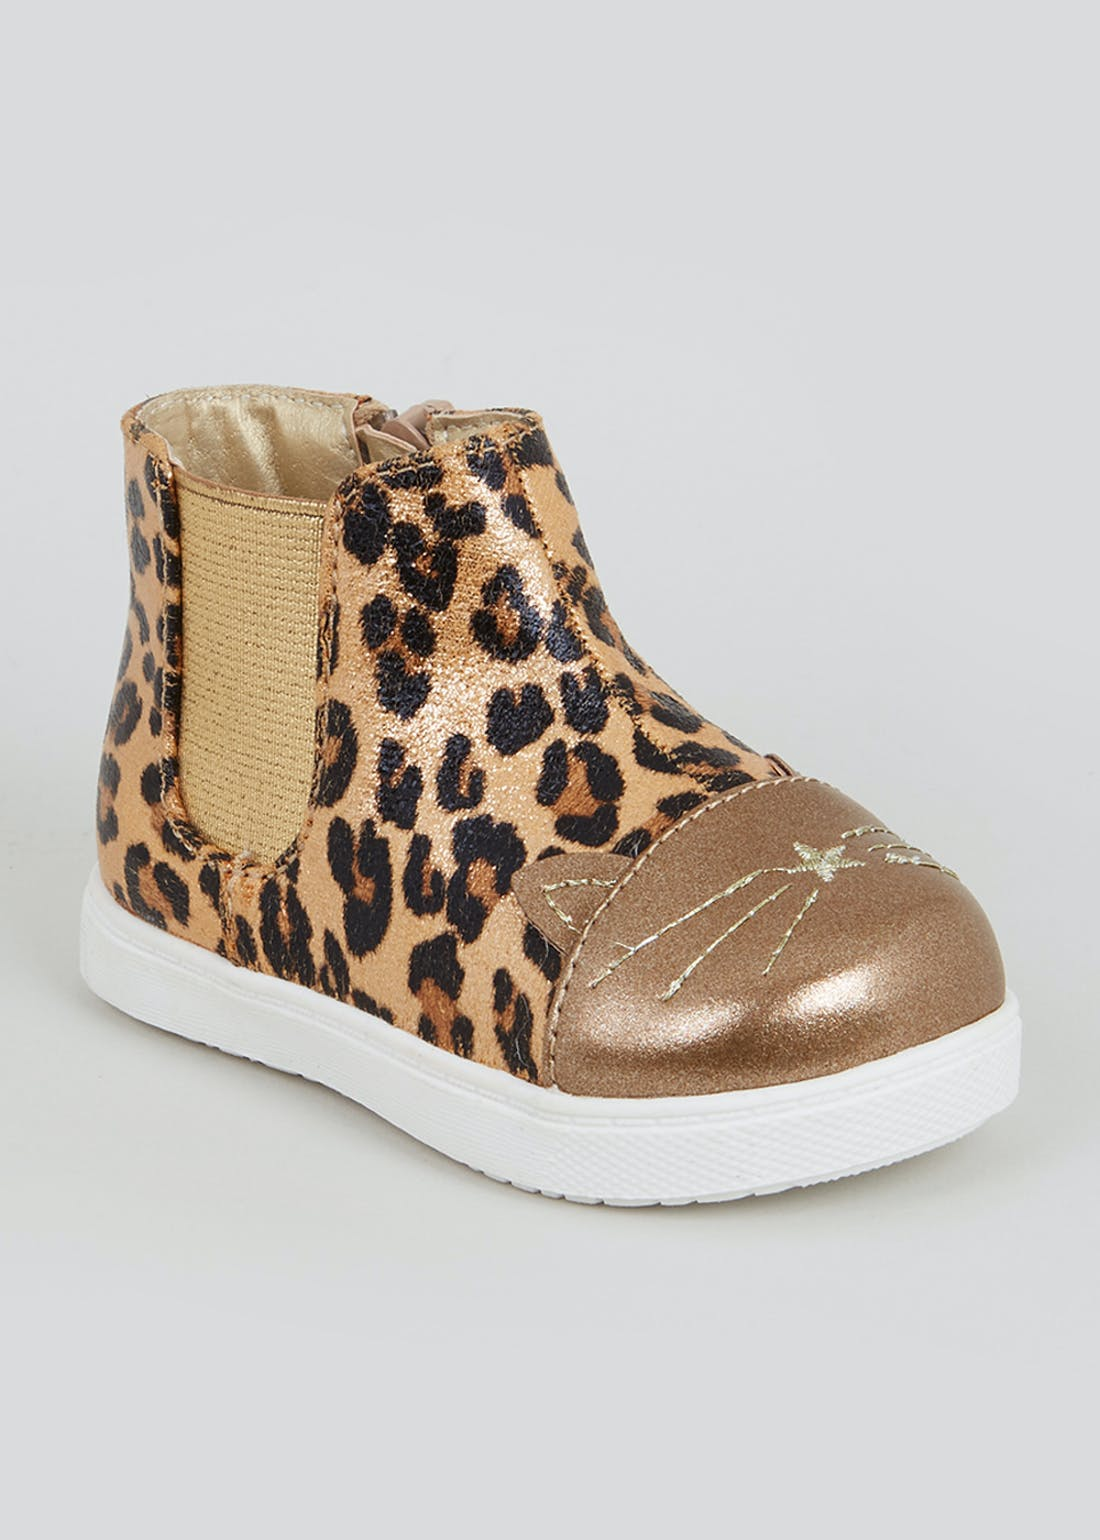 Girls 1st Walkers Gold Leopard Ankle Boots (Younger 3-7)